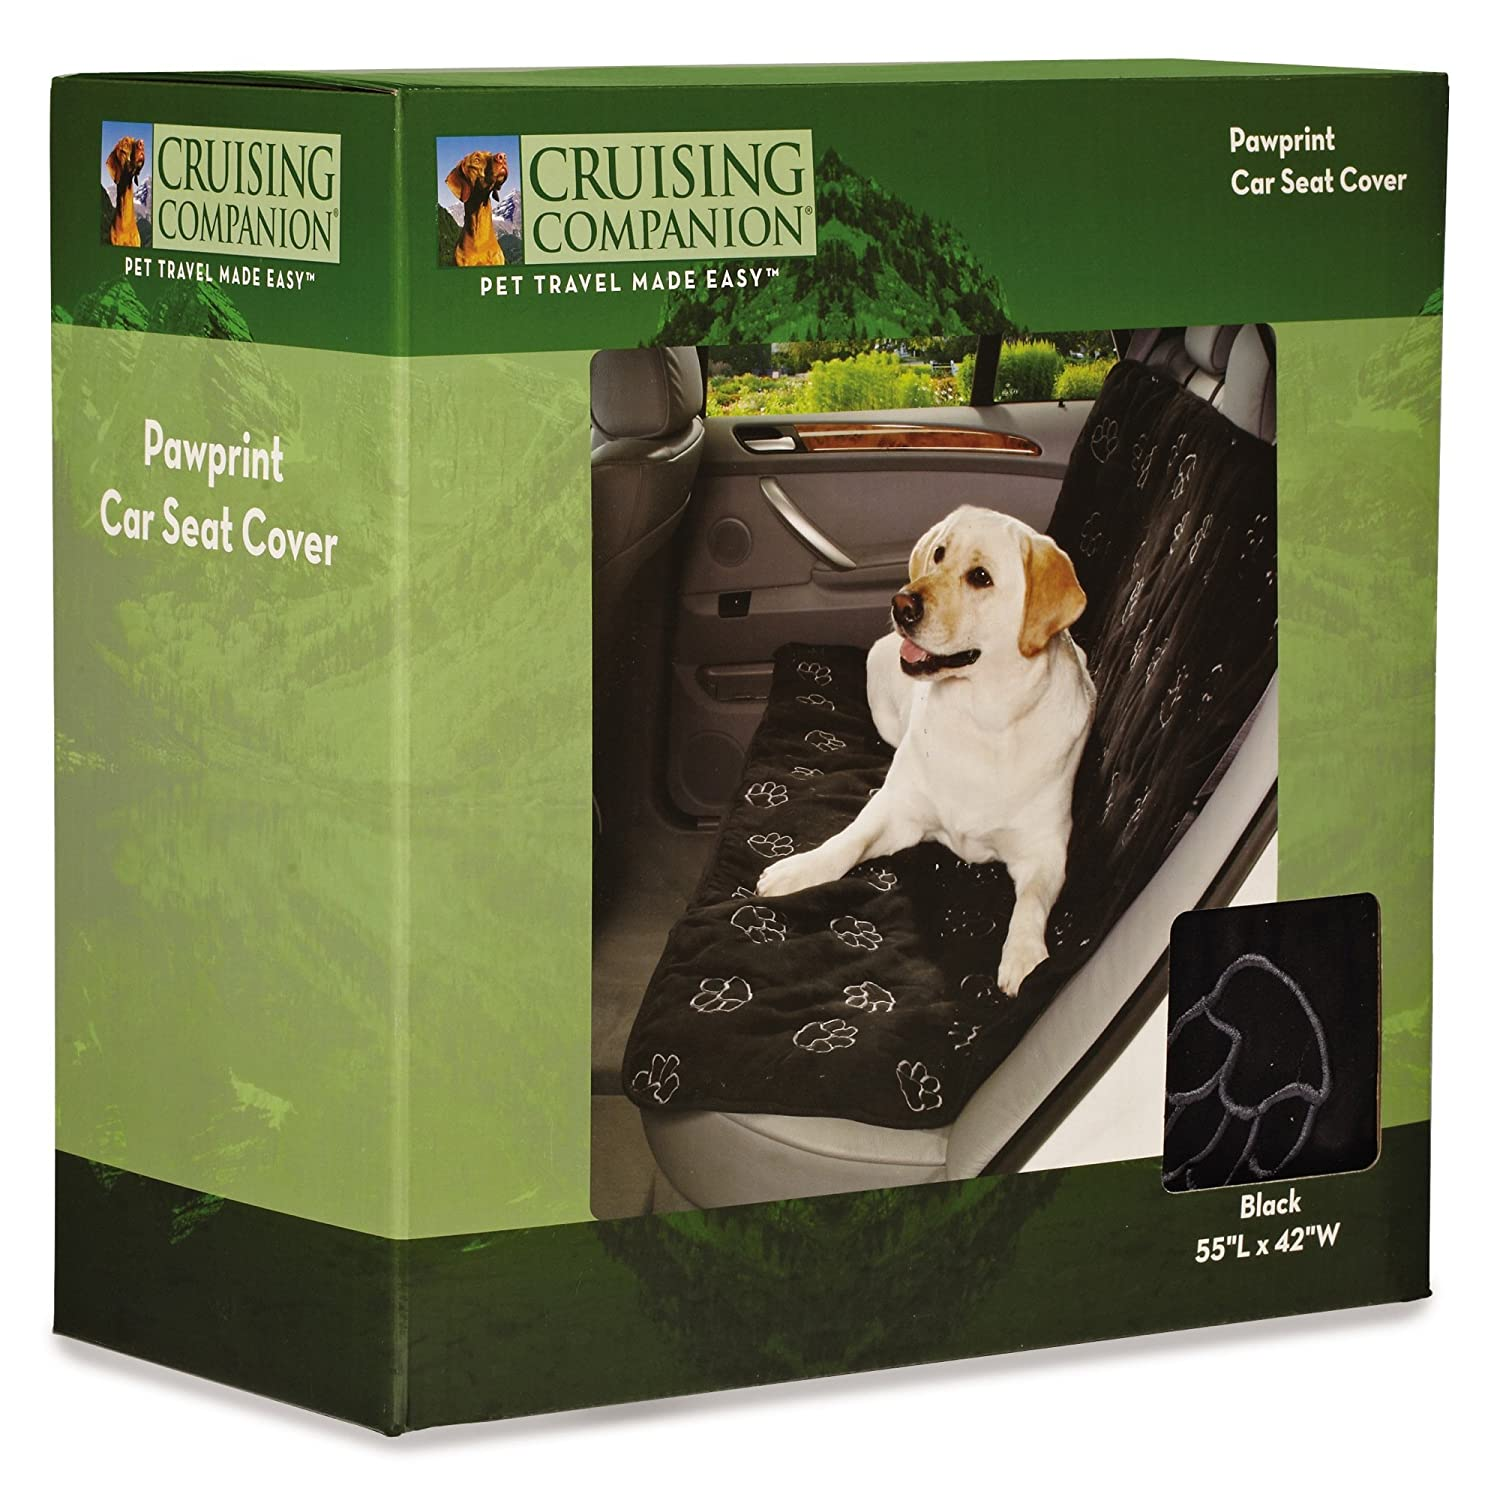 Cruising Companion Pawprint Car Seat Covers — Polyester Covers That Predect Cars from Dog-Related Debris, Black